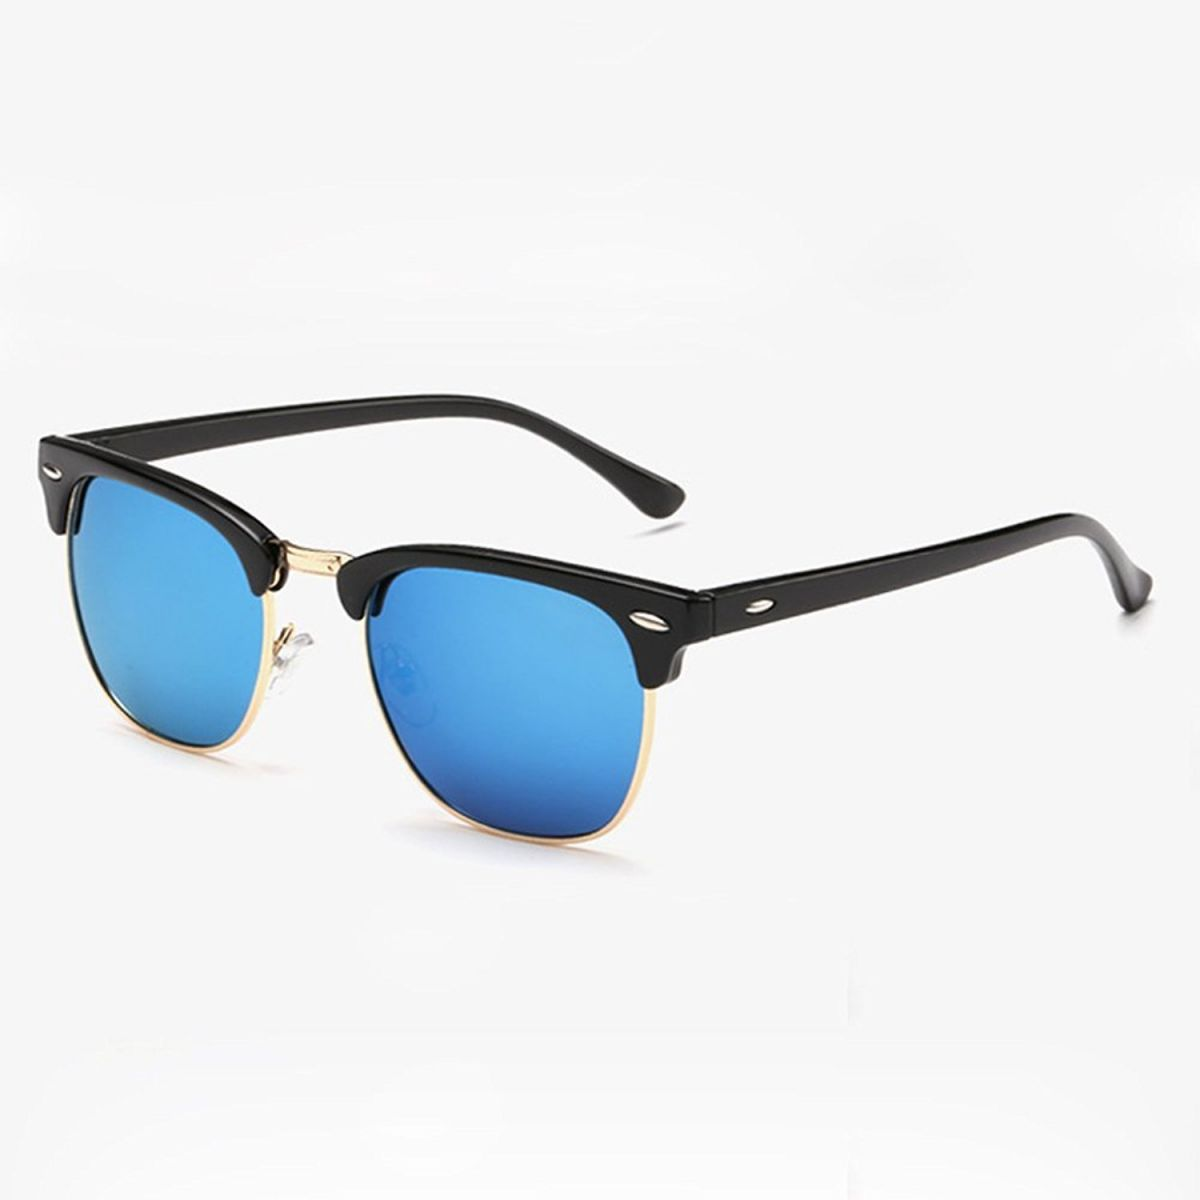 best polarized sunglasses  Joopin Semi Rimless Polarized Sunglasses, $1199 These vintage-inspired  shades look great on any face shape, and more important, they provide 100  percent